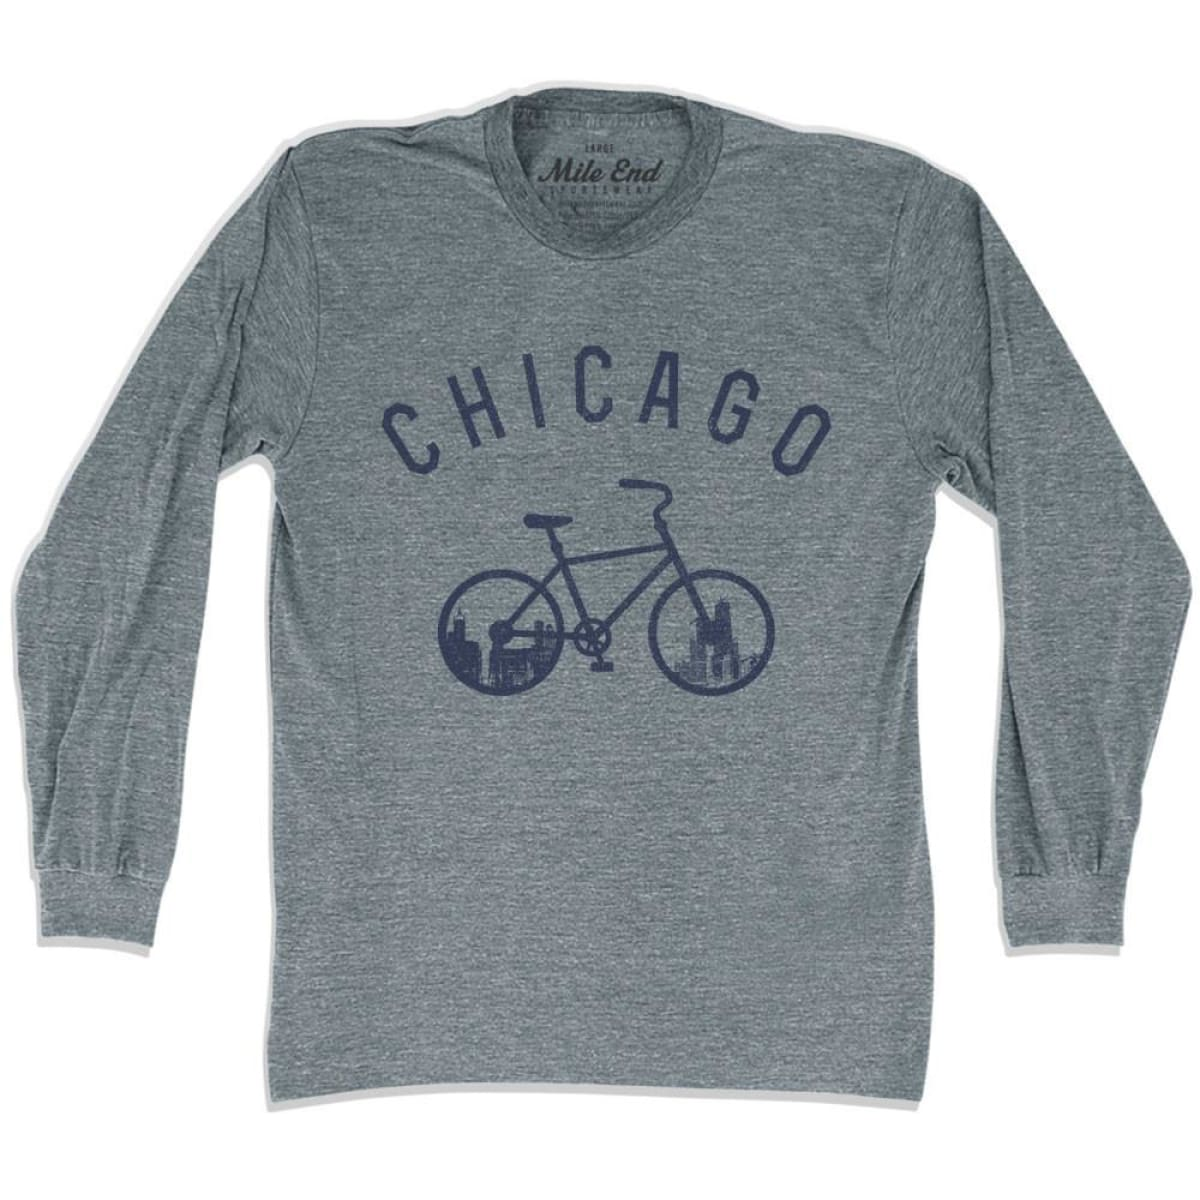 Chicago Bike Long Sleeve T-shirt - Mile End City